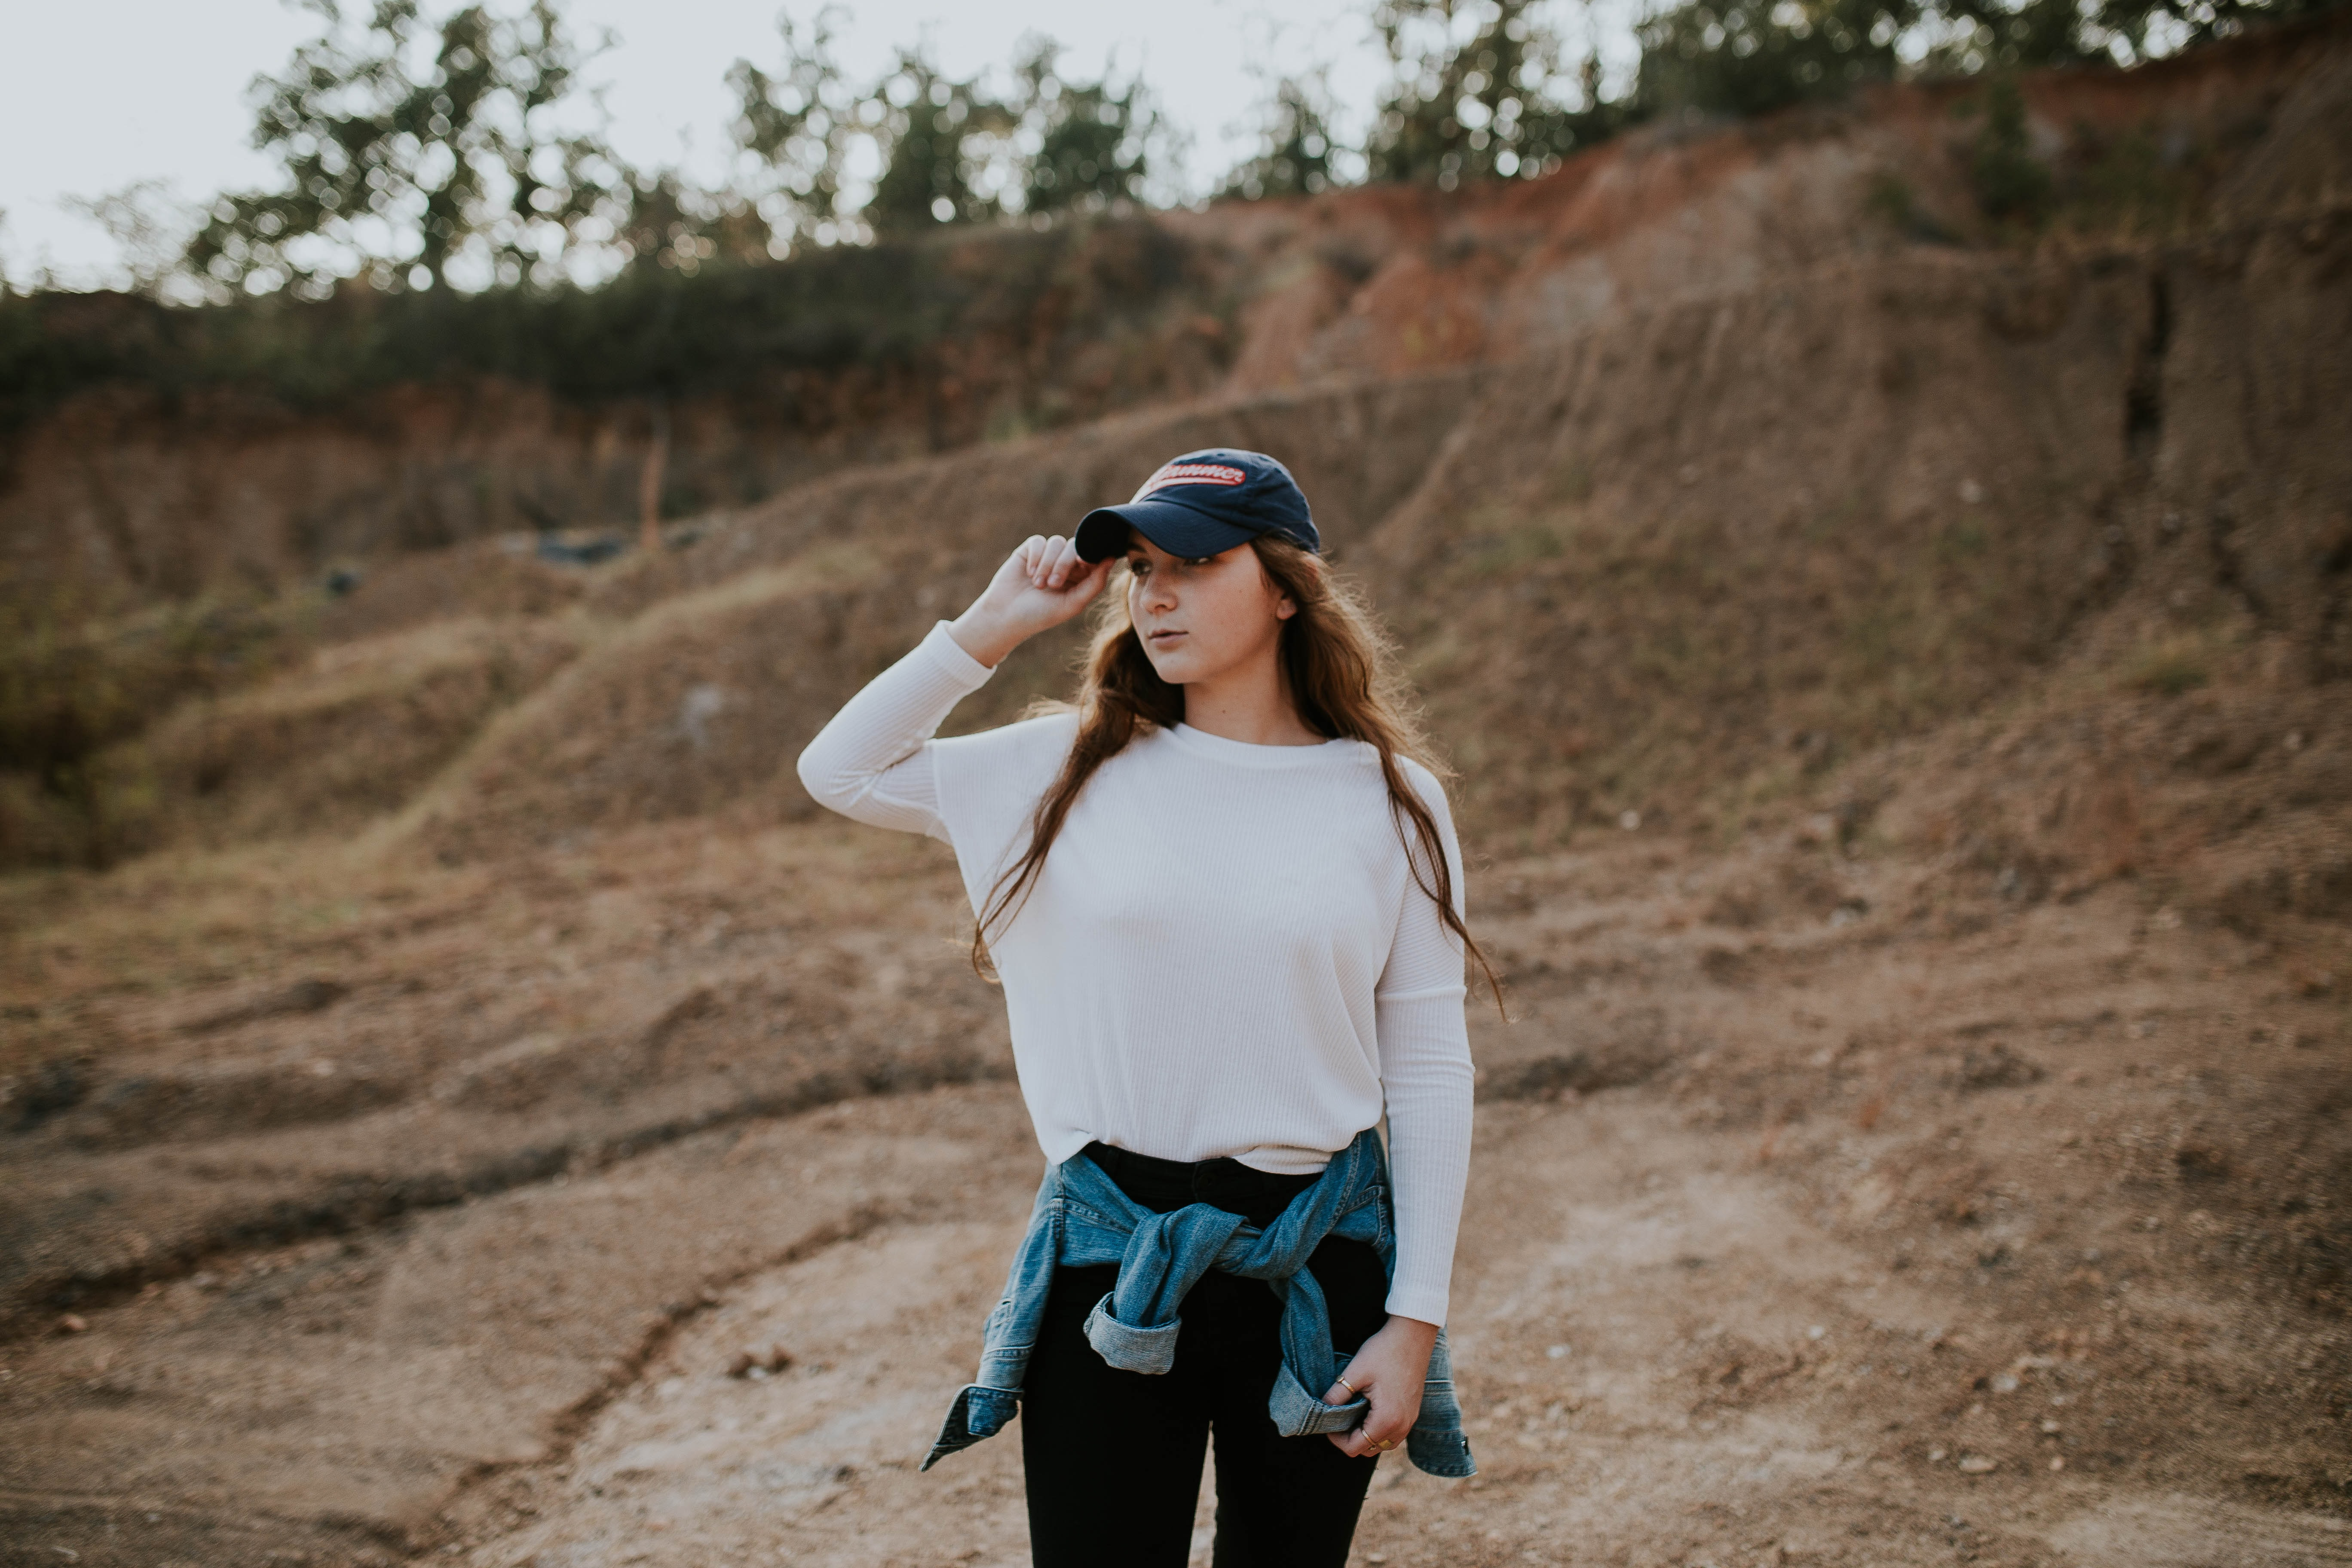 Woman in a baseball cap looking away while hiking alone